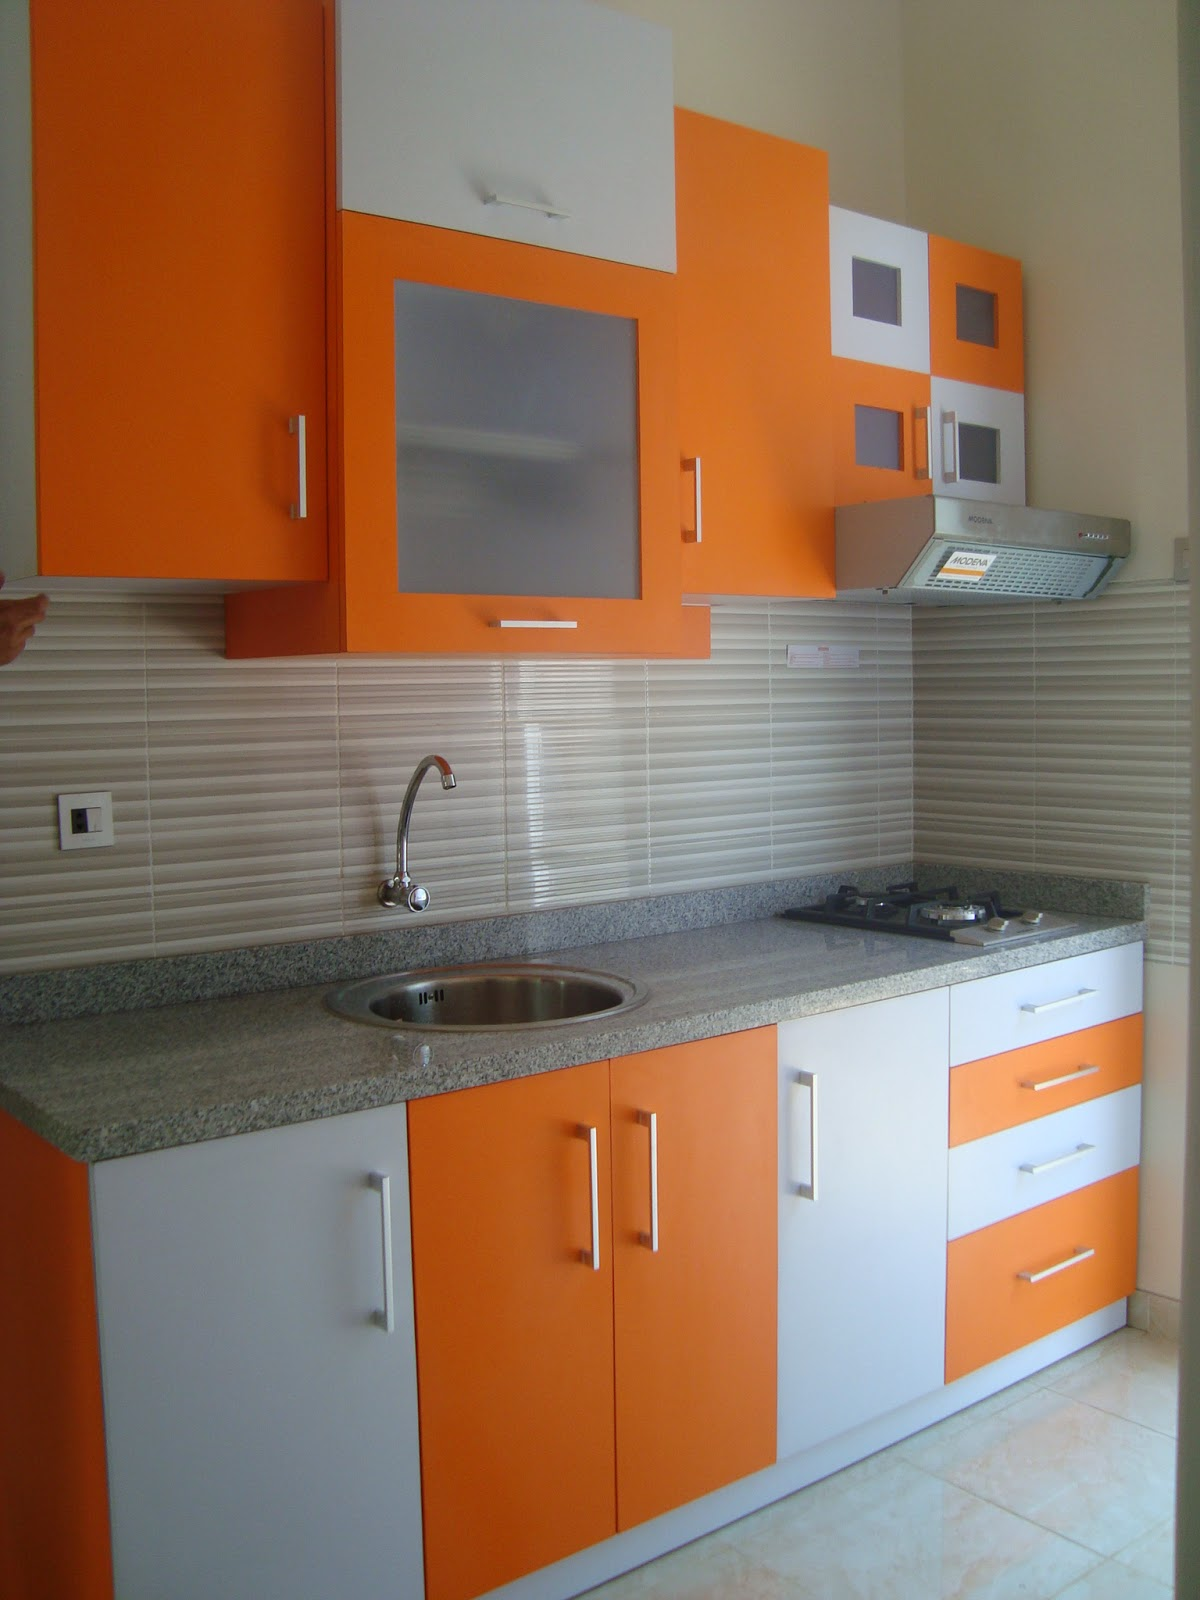 Design interior palembang kitchen set mini bar for Katalog kitchen set